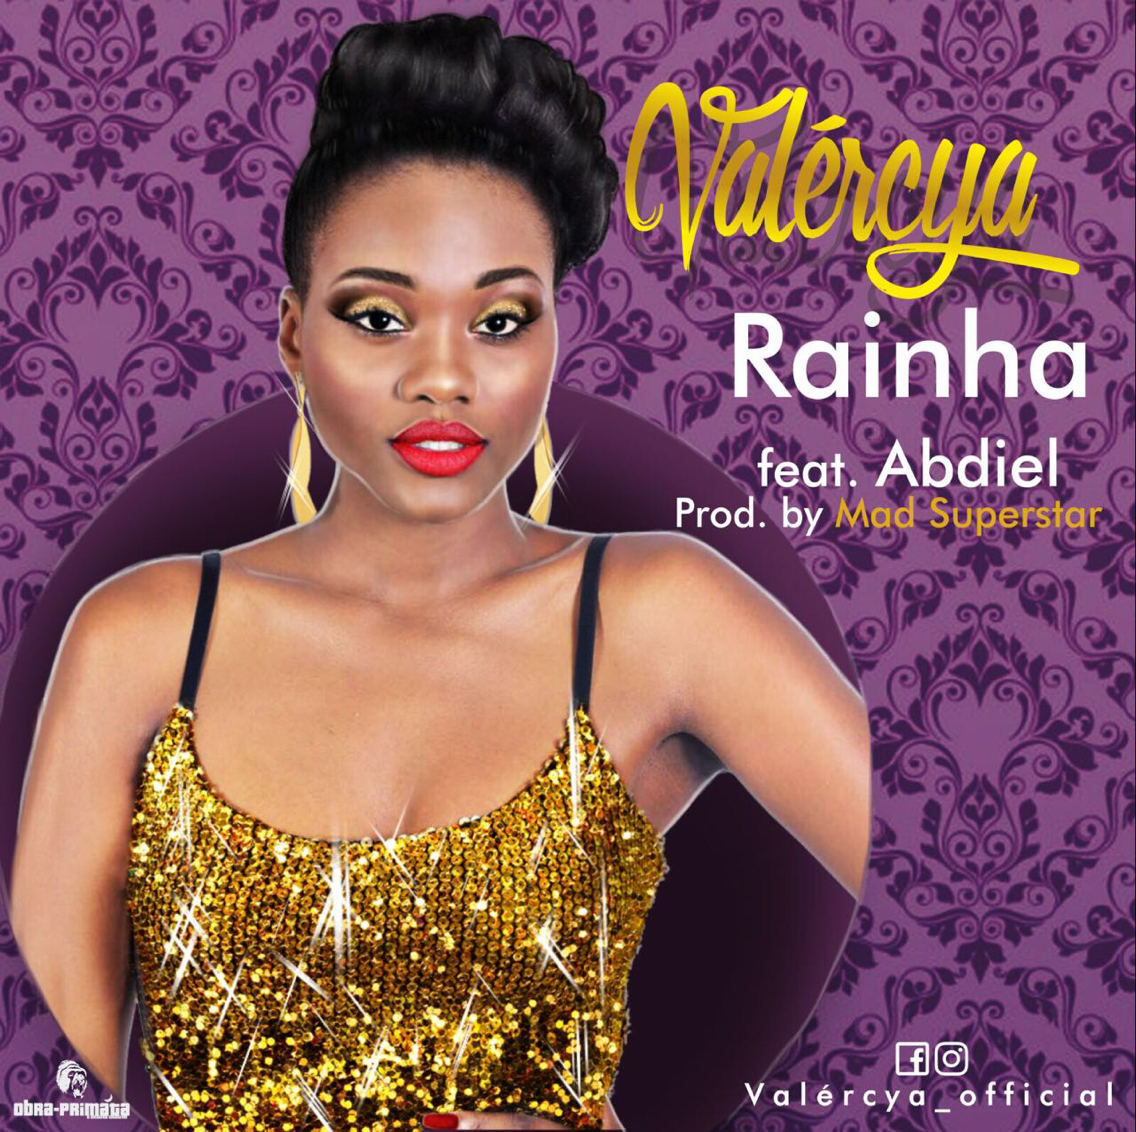 Valercya Feat. Abdiel - Rainha (Kizomba) [Download]